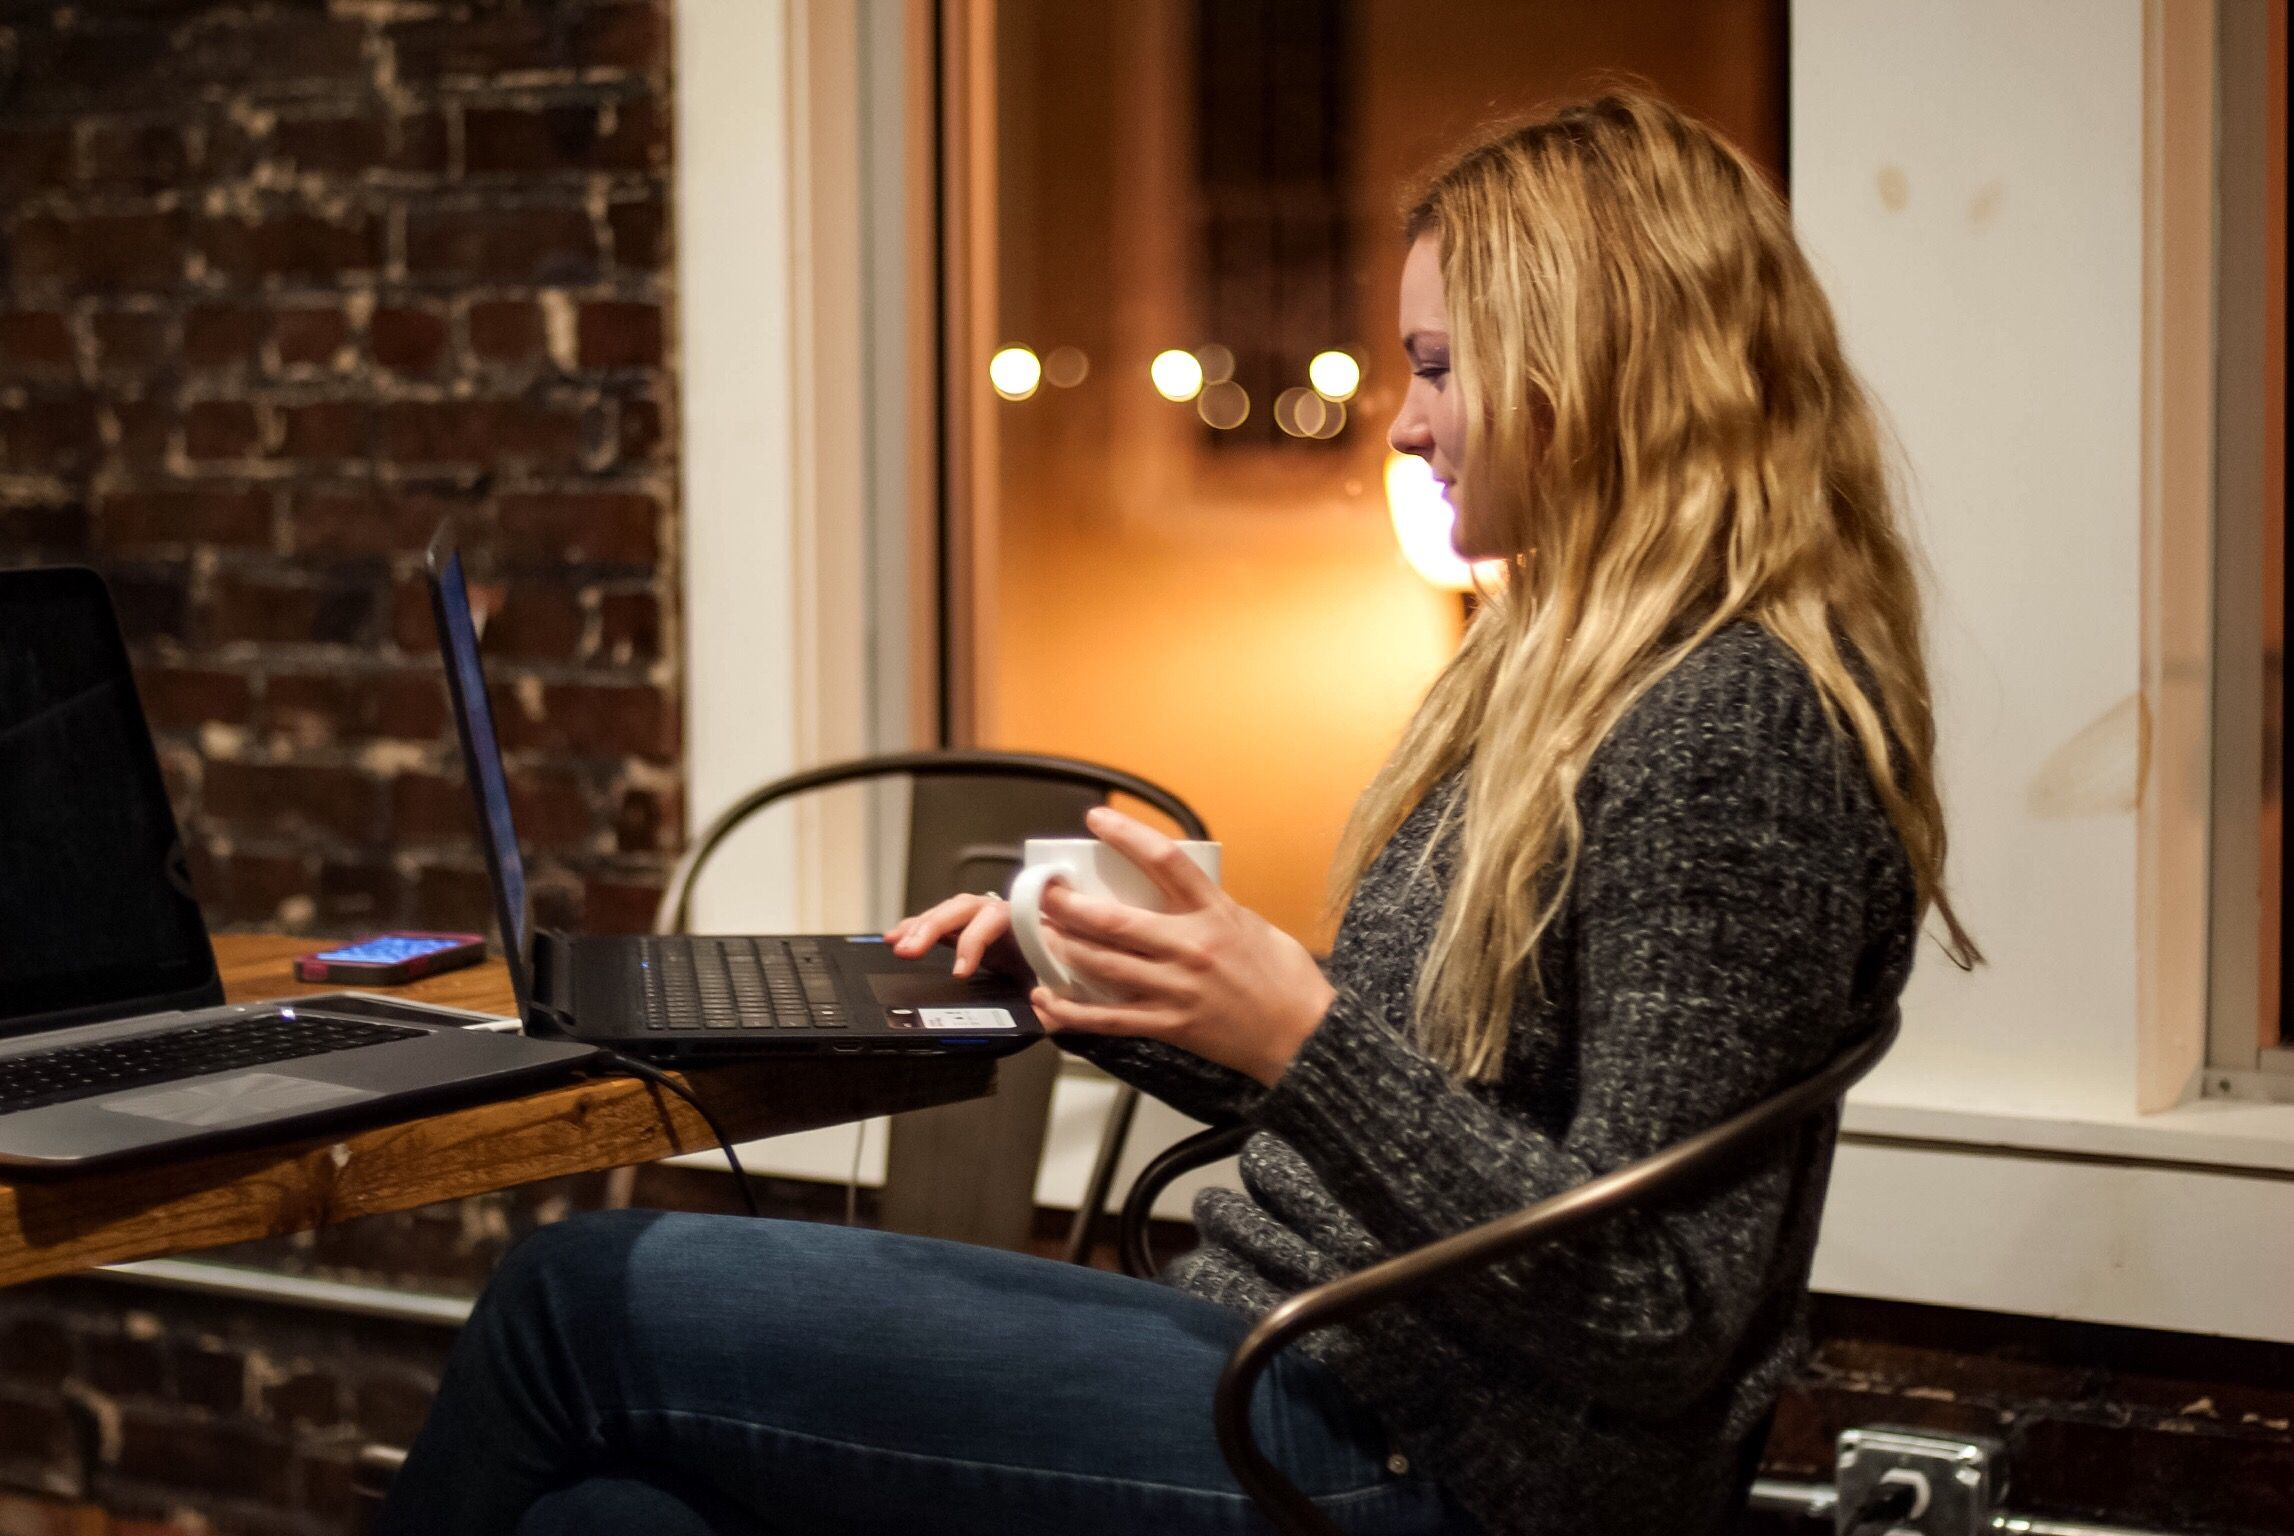 A young woman studies on her laptop while drinking a cup of coffee